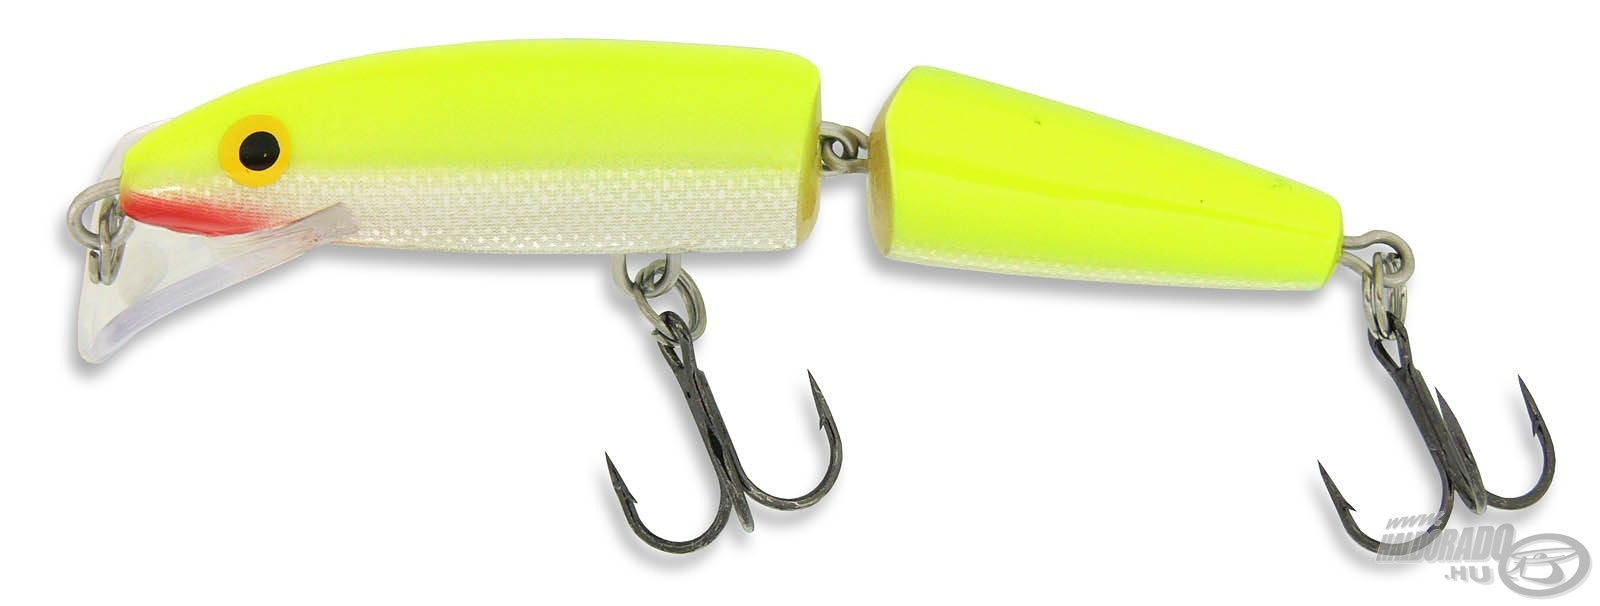 Rapala Scatter Rap Jointed SCRJ09 SFC 3990 helyett 2990Ft